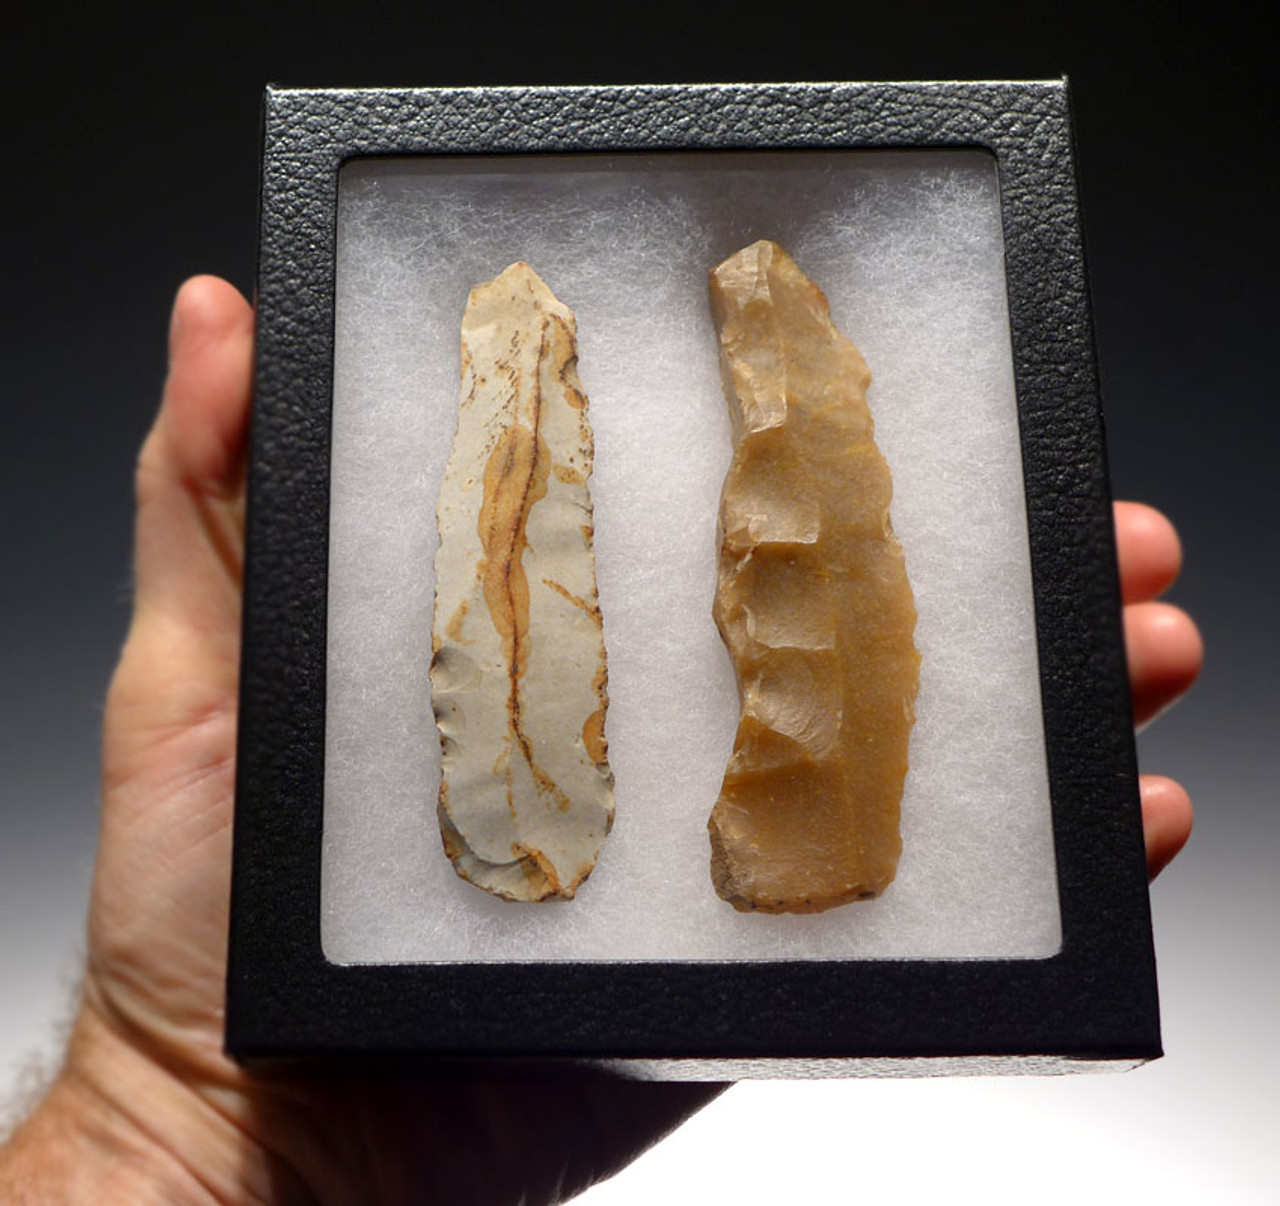 N158 - MUSEUM-GRADE SET OF 2 UNBROKEN LONG FLINT EUROPEAN NEOLITHIC STONE KNIFE BLADES OF DIFFERENT SOURCES